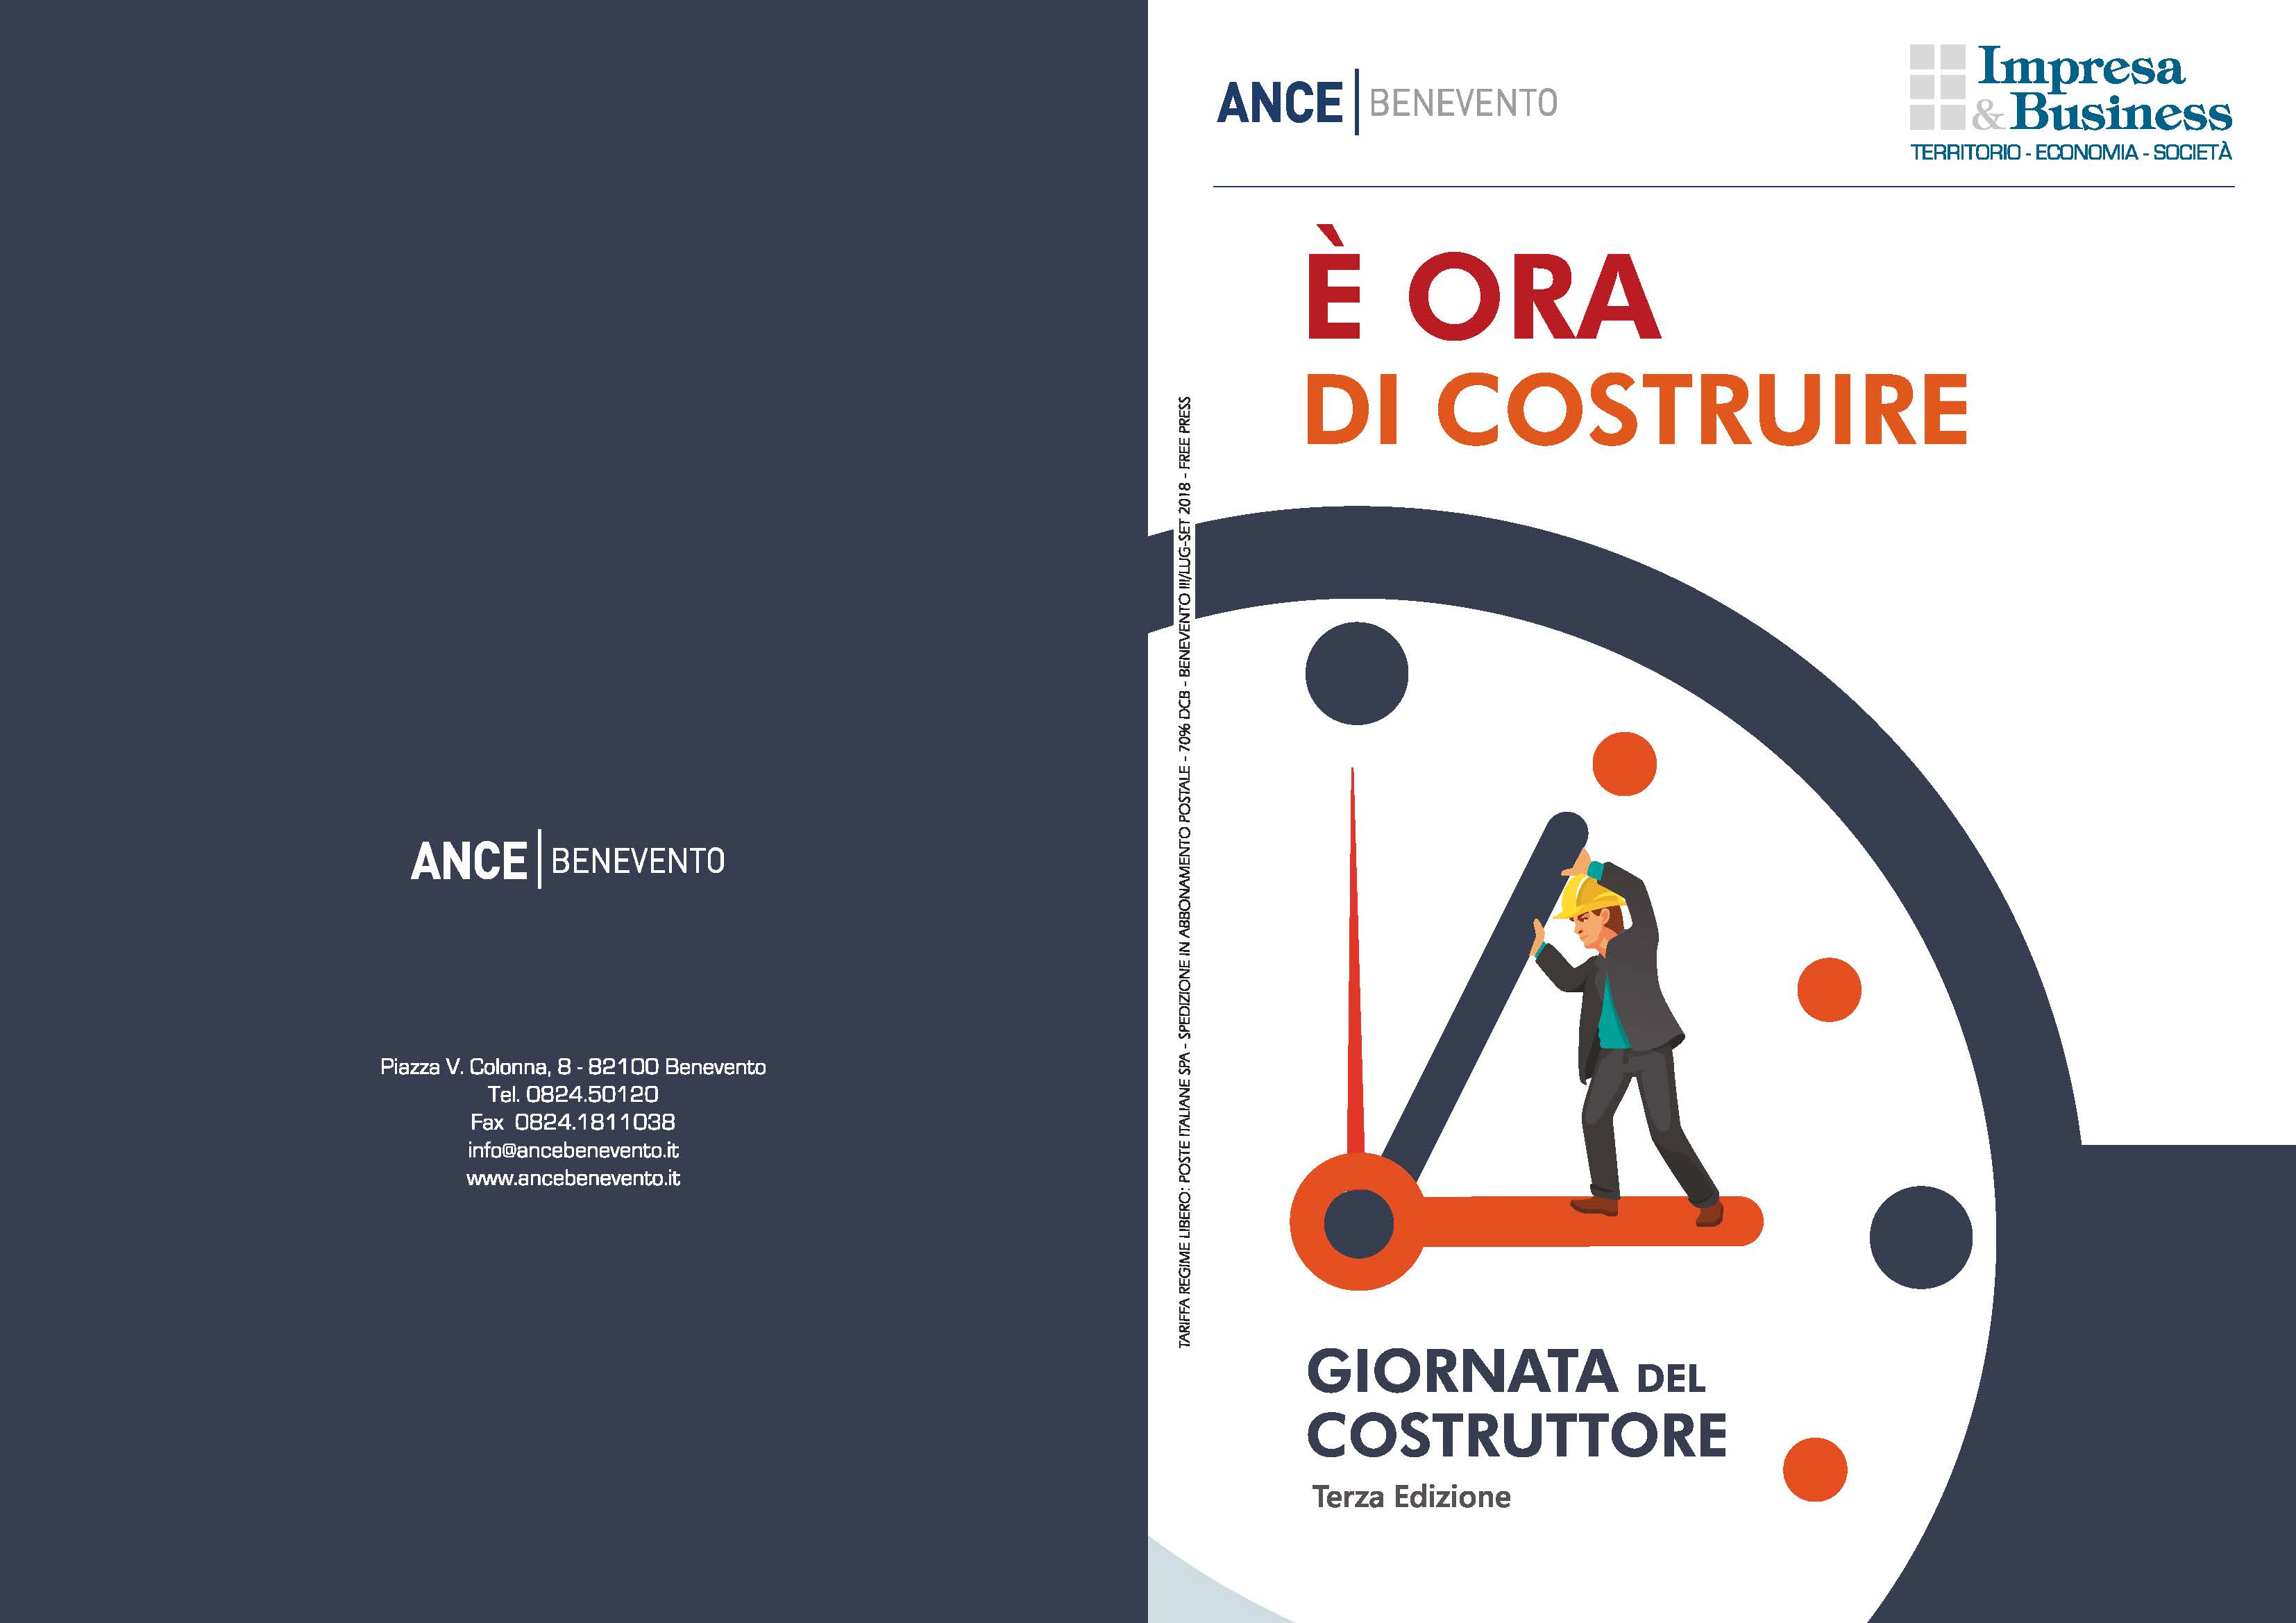 Cover ANCE web